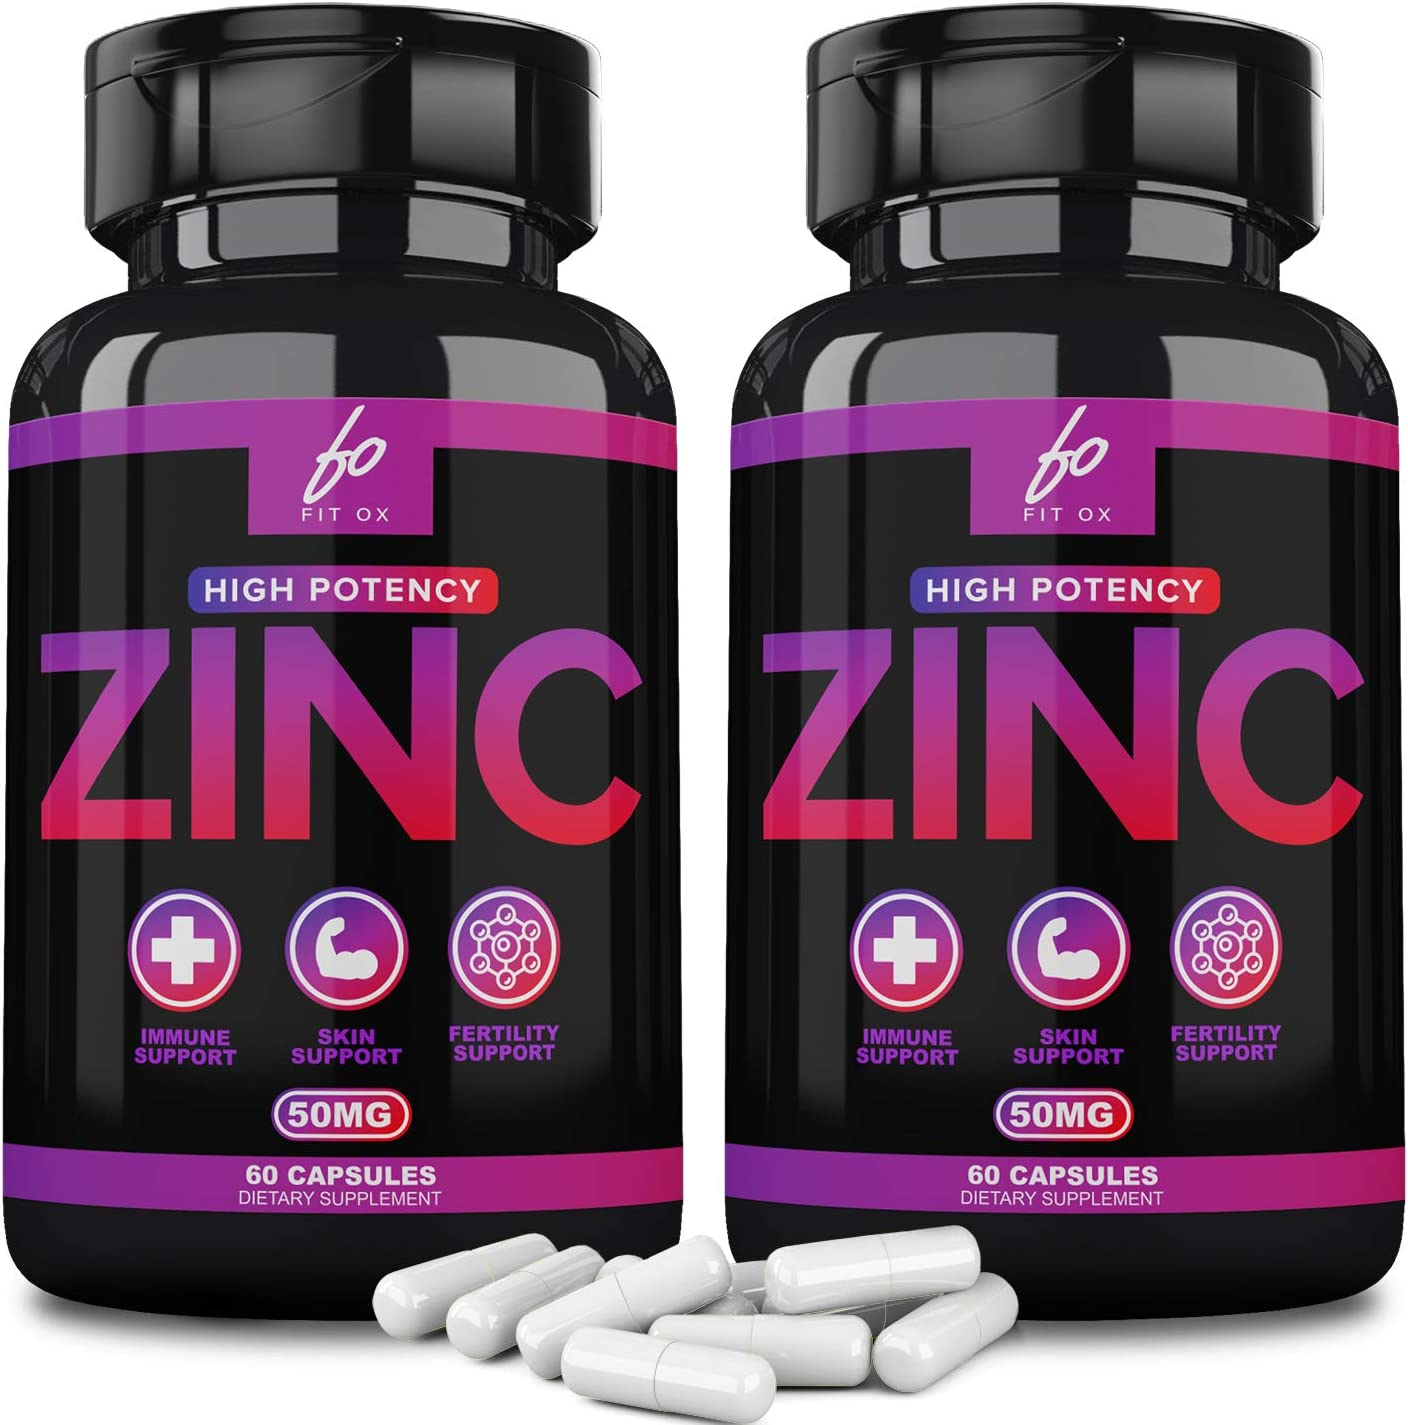 (50mg) Zinc Oxide Citrate Supplement Vitamin for Adults Kids Men Women for Immune Support Booster, Pure Zink Vitaminas Capsules Pills Alternative to Chewable Zinc Gummies, Lozenge Liquid Drops(2 Pack)